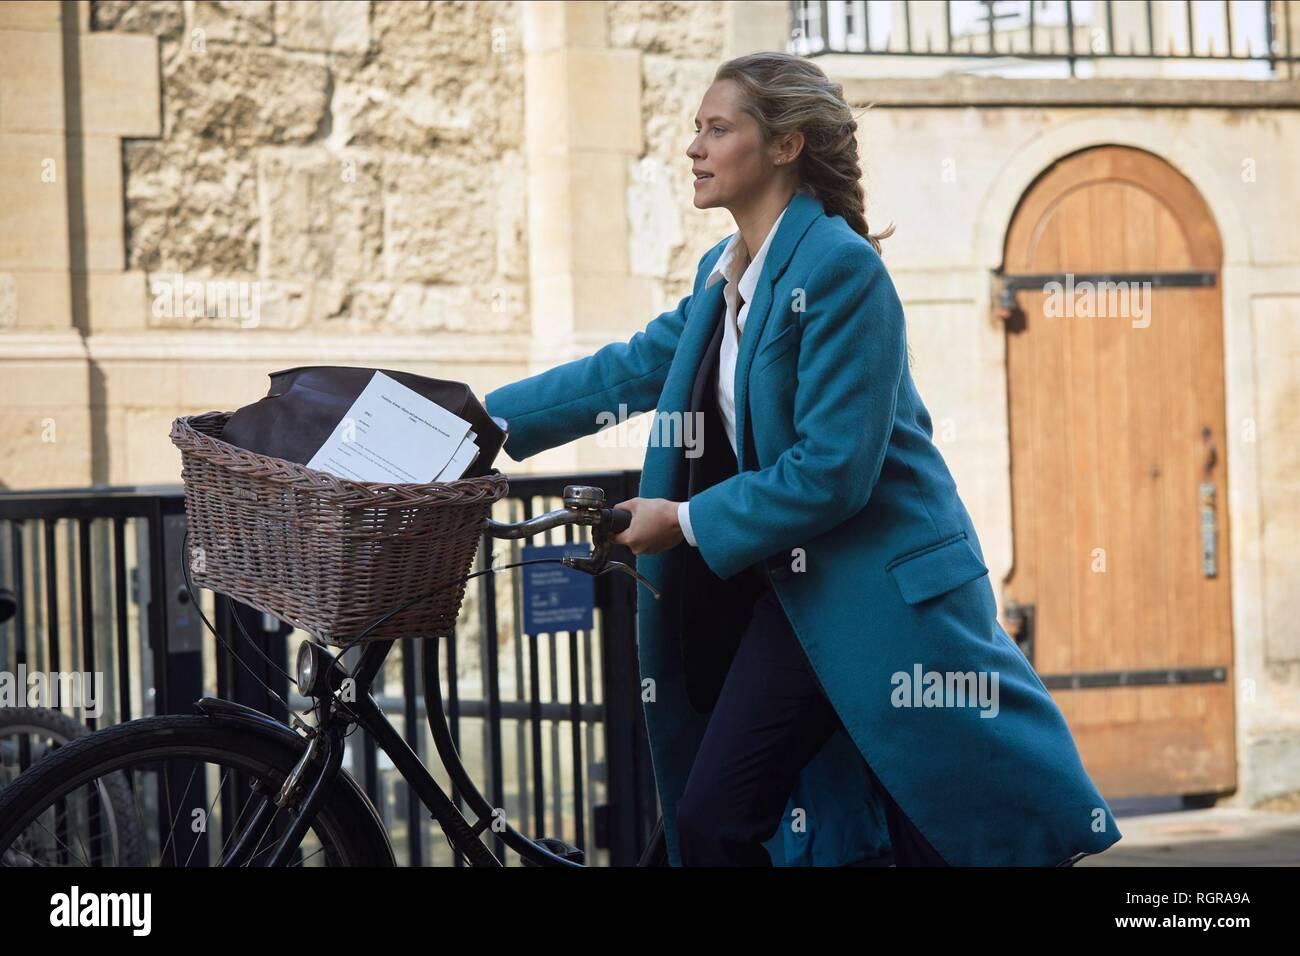 TERESA PALMER A DISCOVERY OF WITCHES (2018) - Stock Image